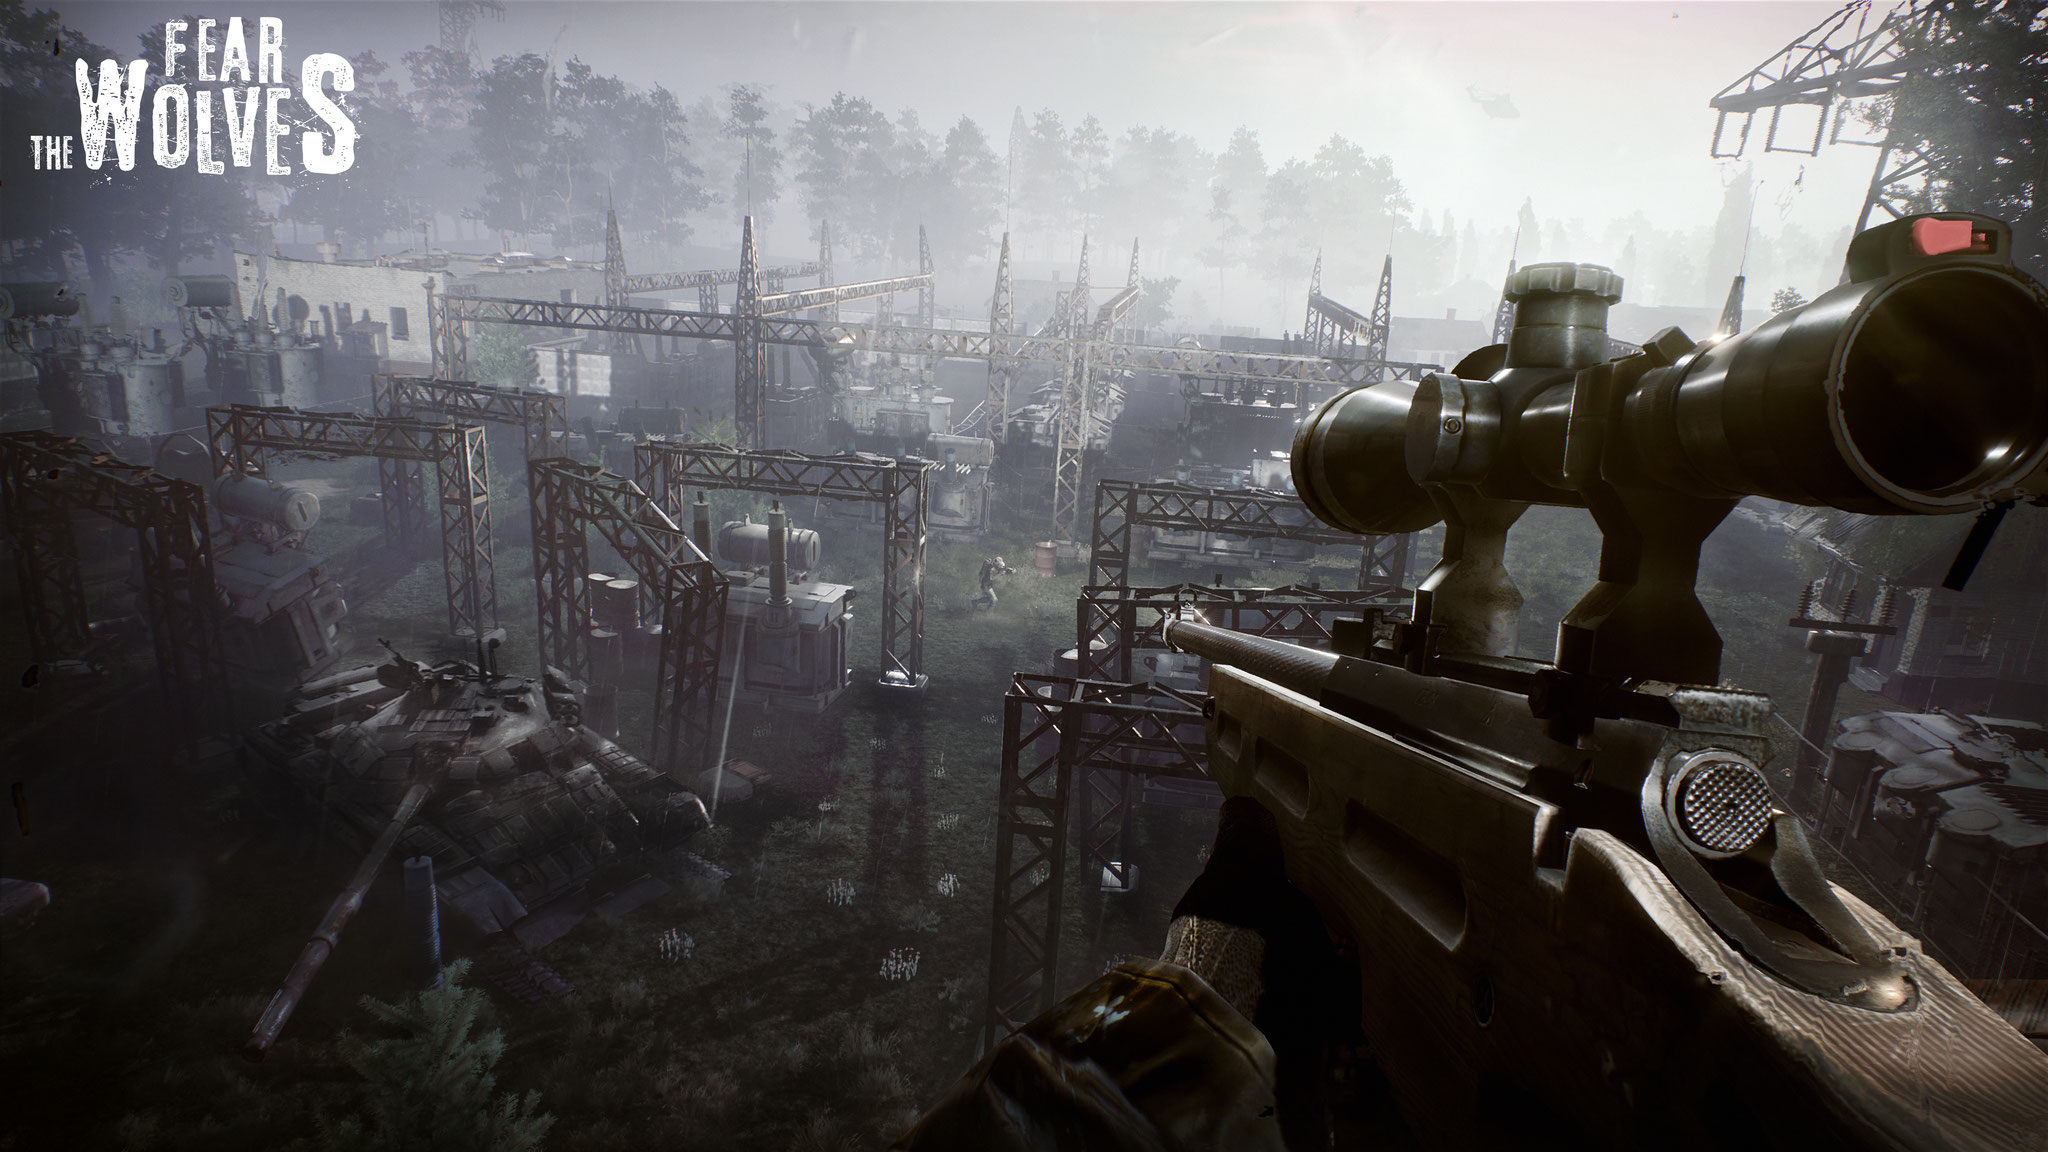 Fear the Wolves Gameplay Screenshots #4 Bild: Focus Home Interactive